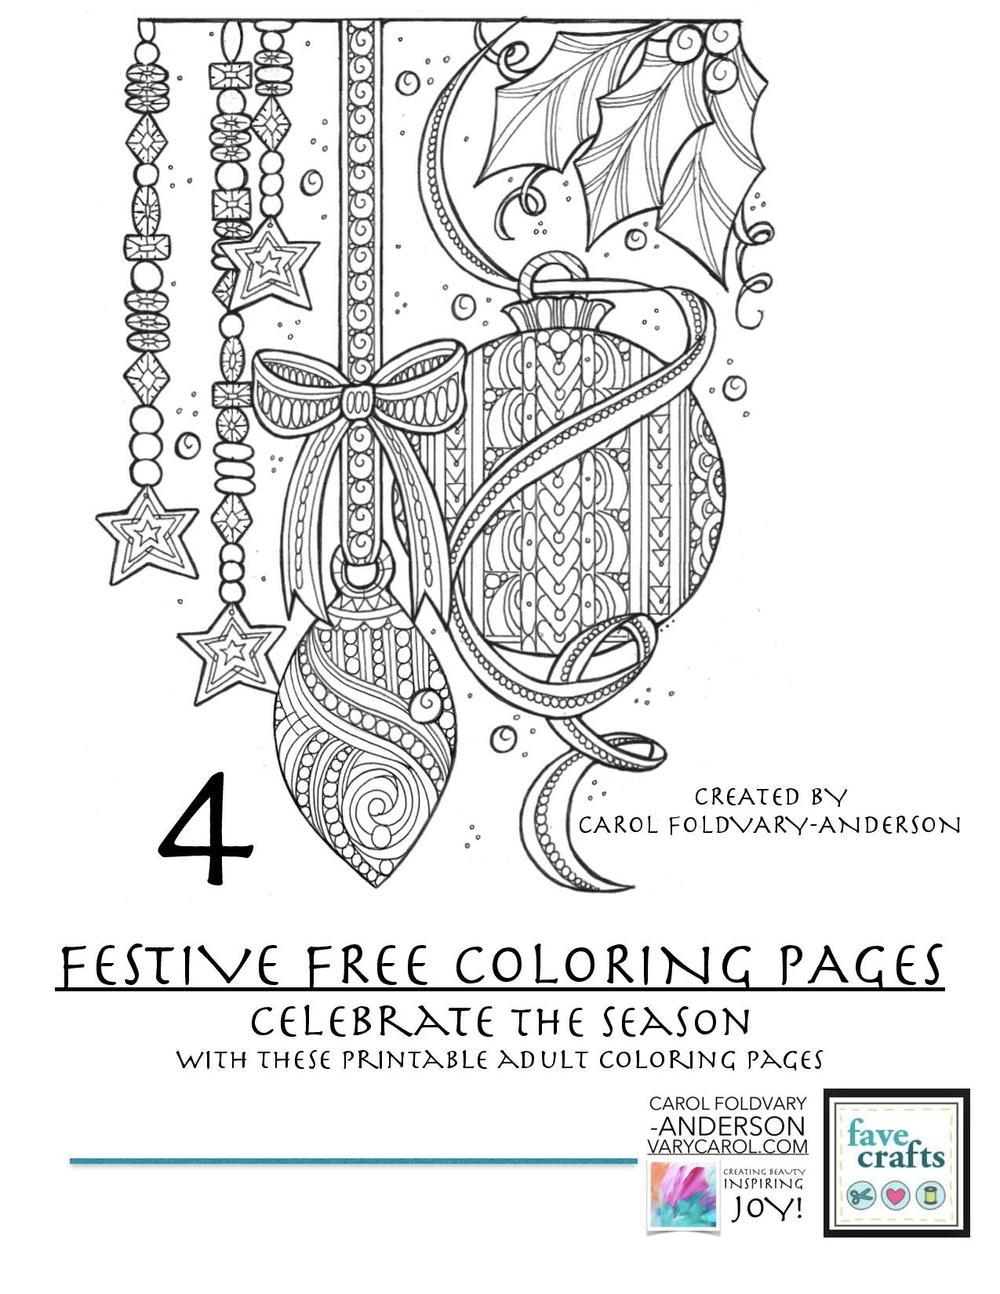 Christmas Coloring Pages For Adults Pdf With 4 Festive Free Holiday PDF